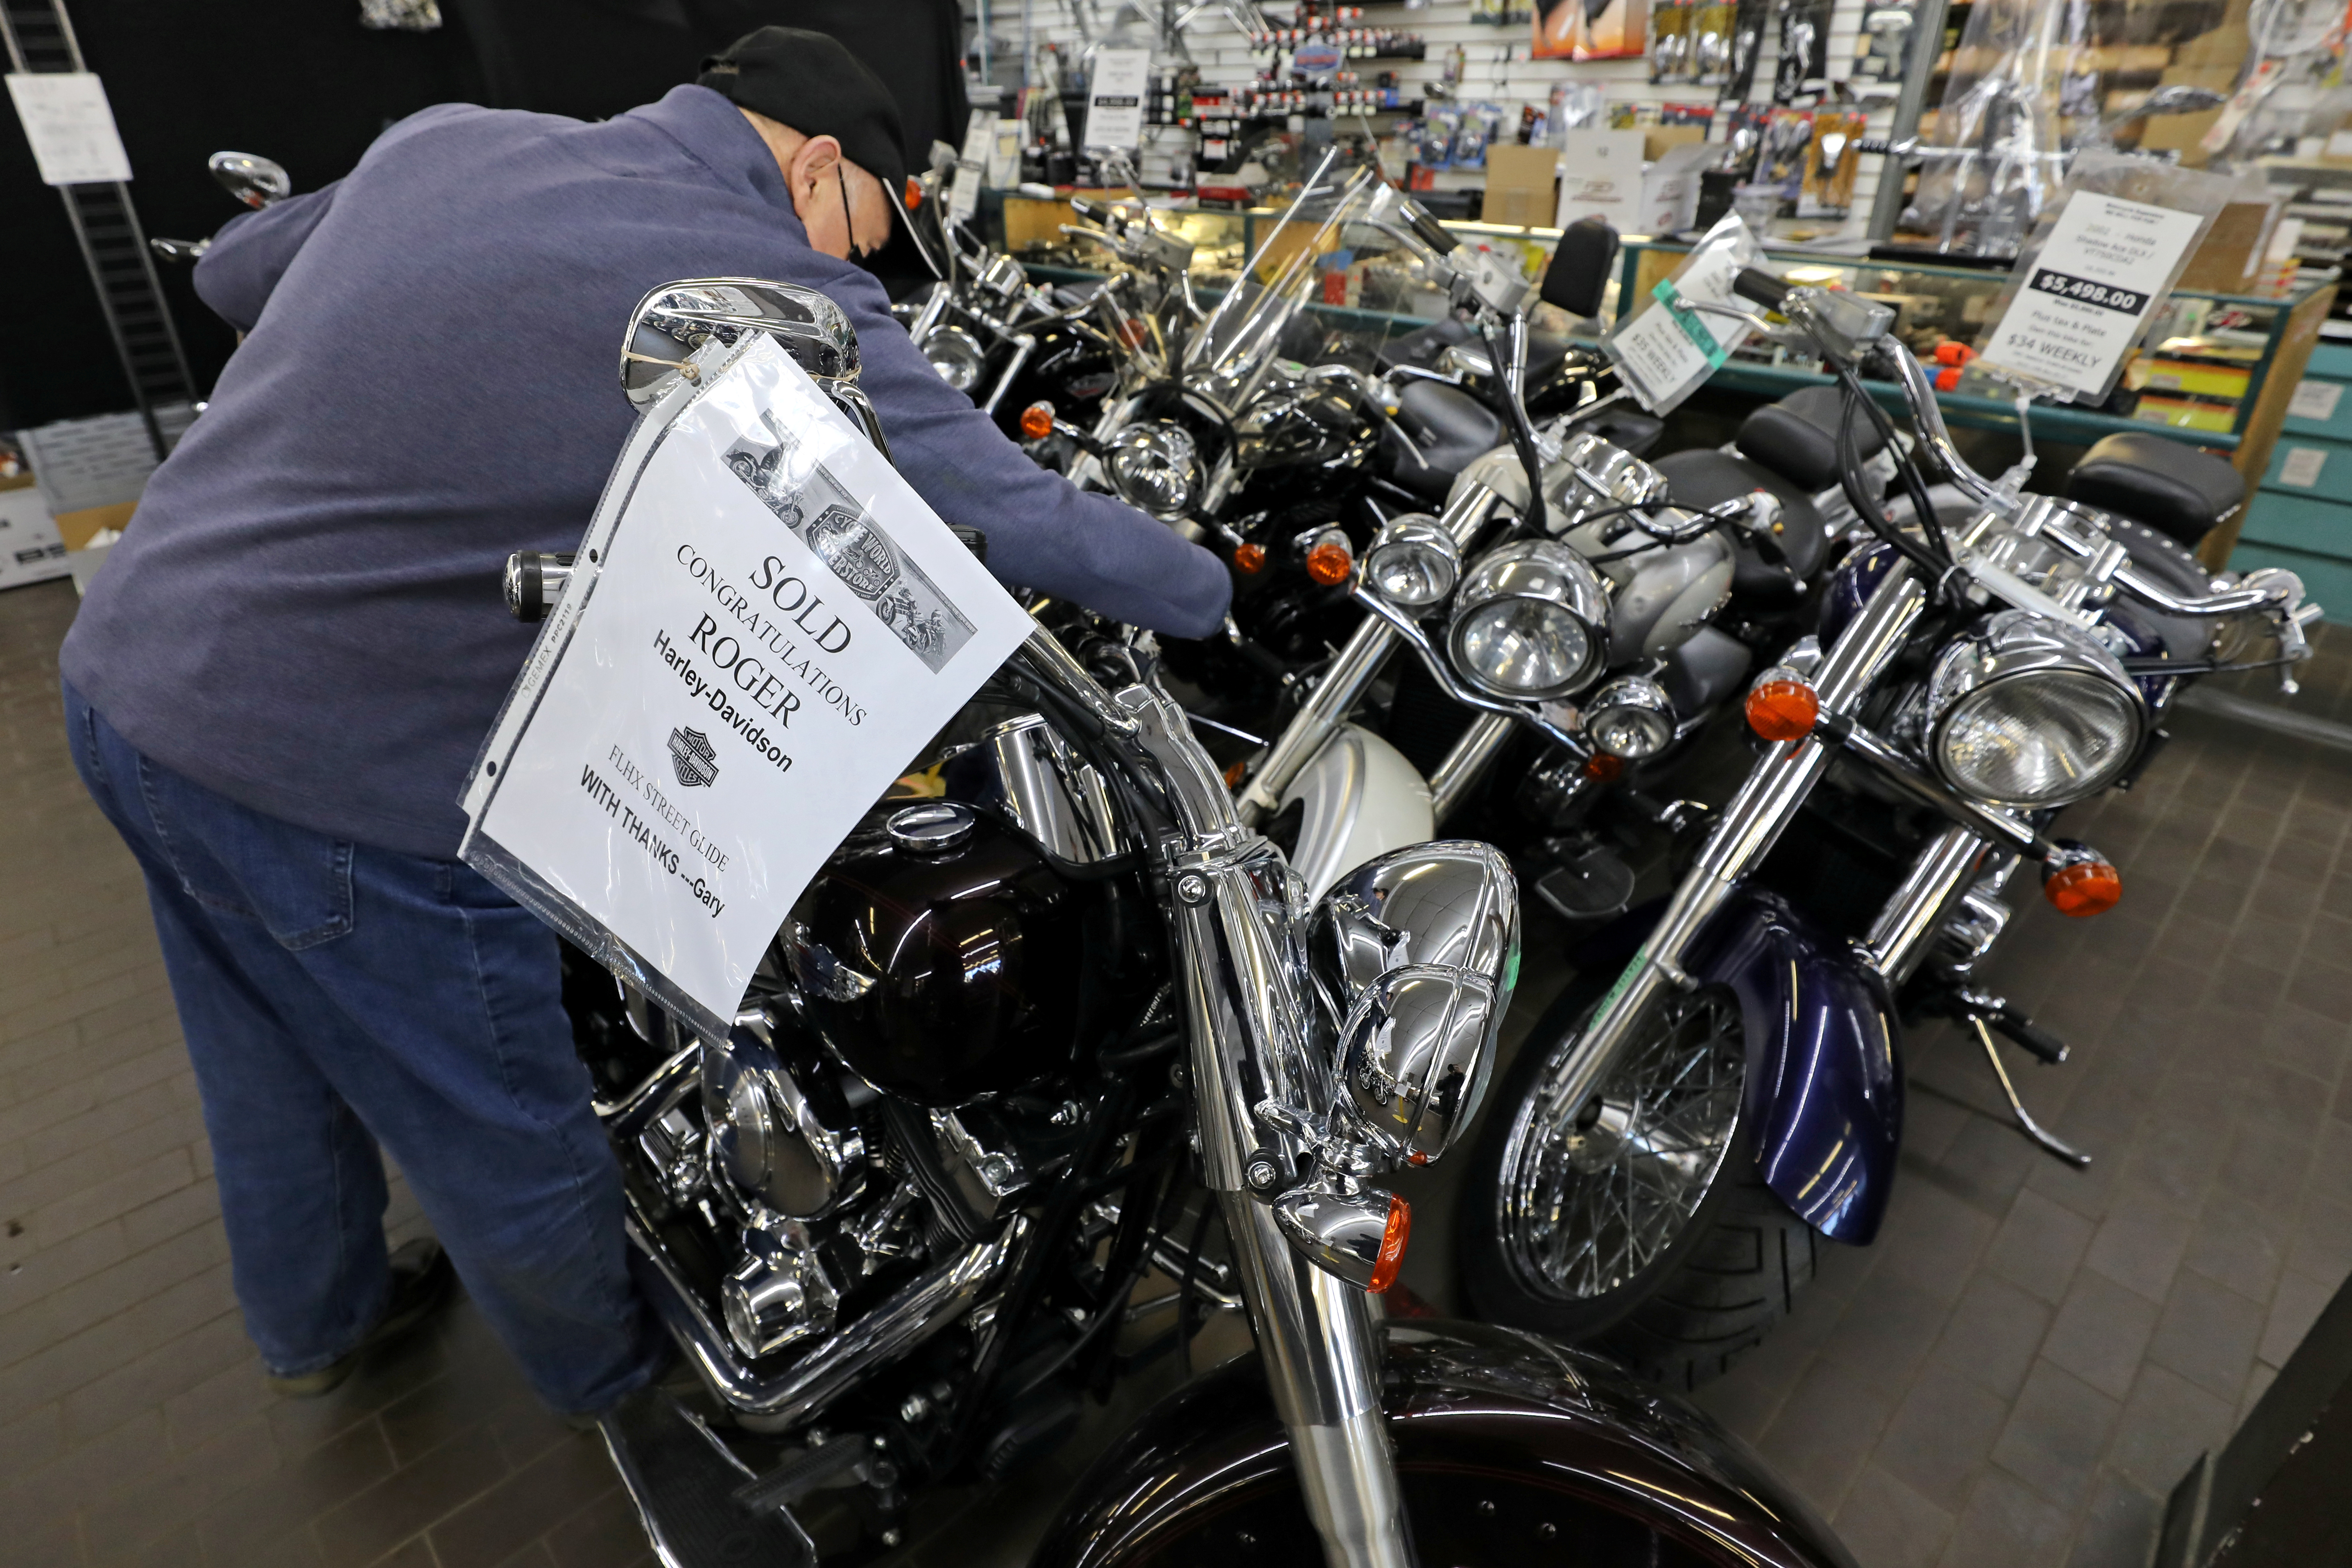 Gary Haines of Cycle World Superstore places a SOLD sign on a Harley Davidson motorcycle that had been purchased by a customer in Toronto, Ontario, Canada March 20, 2021. REUTERS/Chris Helgren